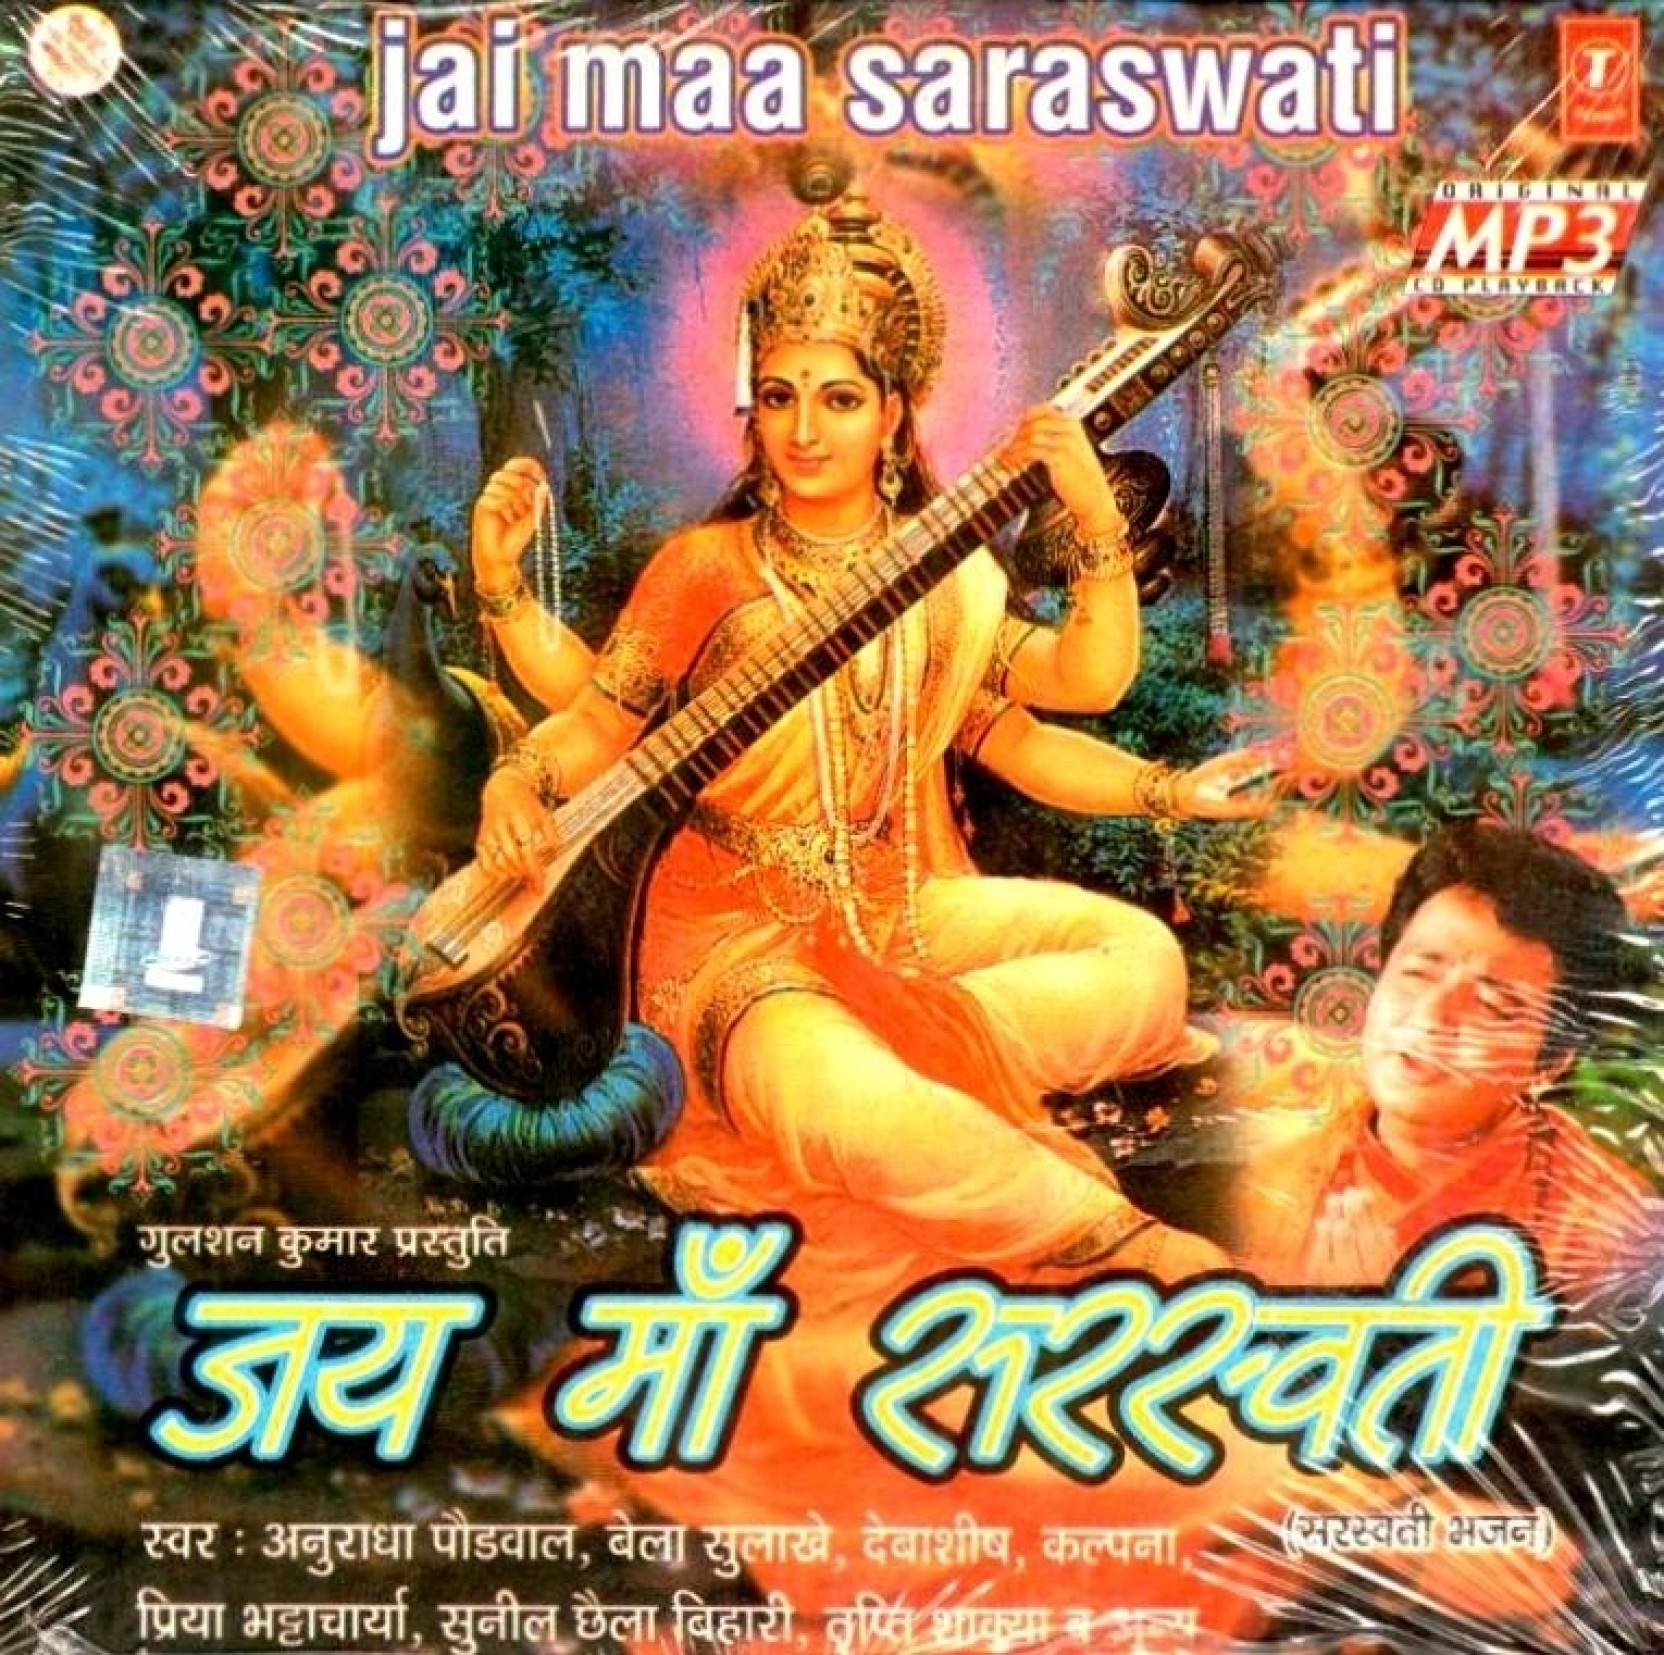 Maa Ke Bhajan Mp3 Zip